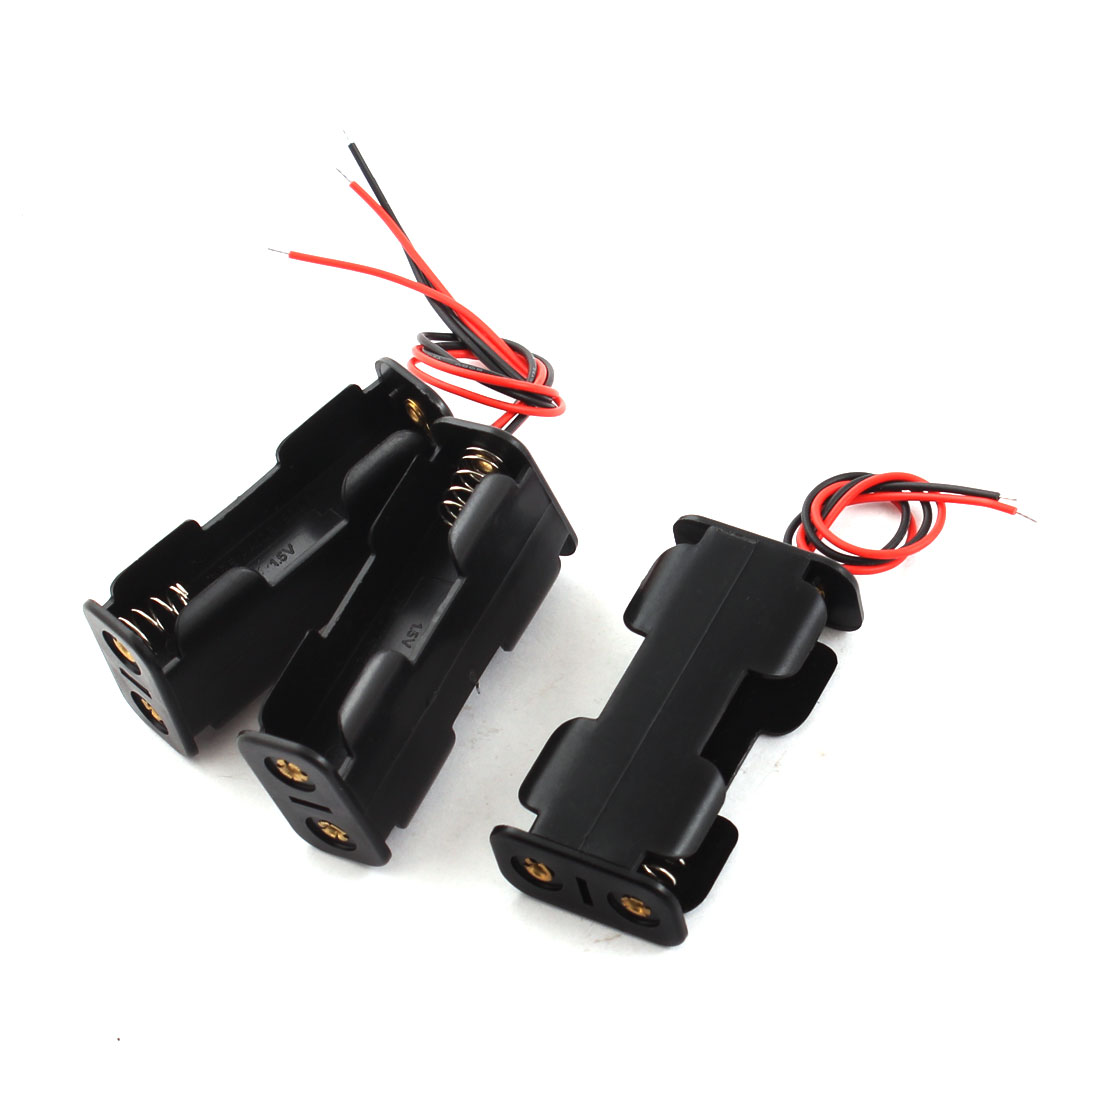 3pcs Wired Plastic Battery Holder Case Box for 2 x AA 1.5V Batteries